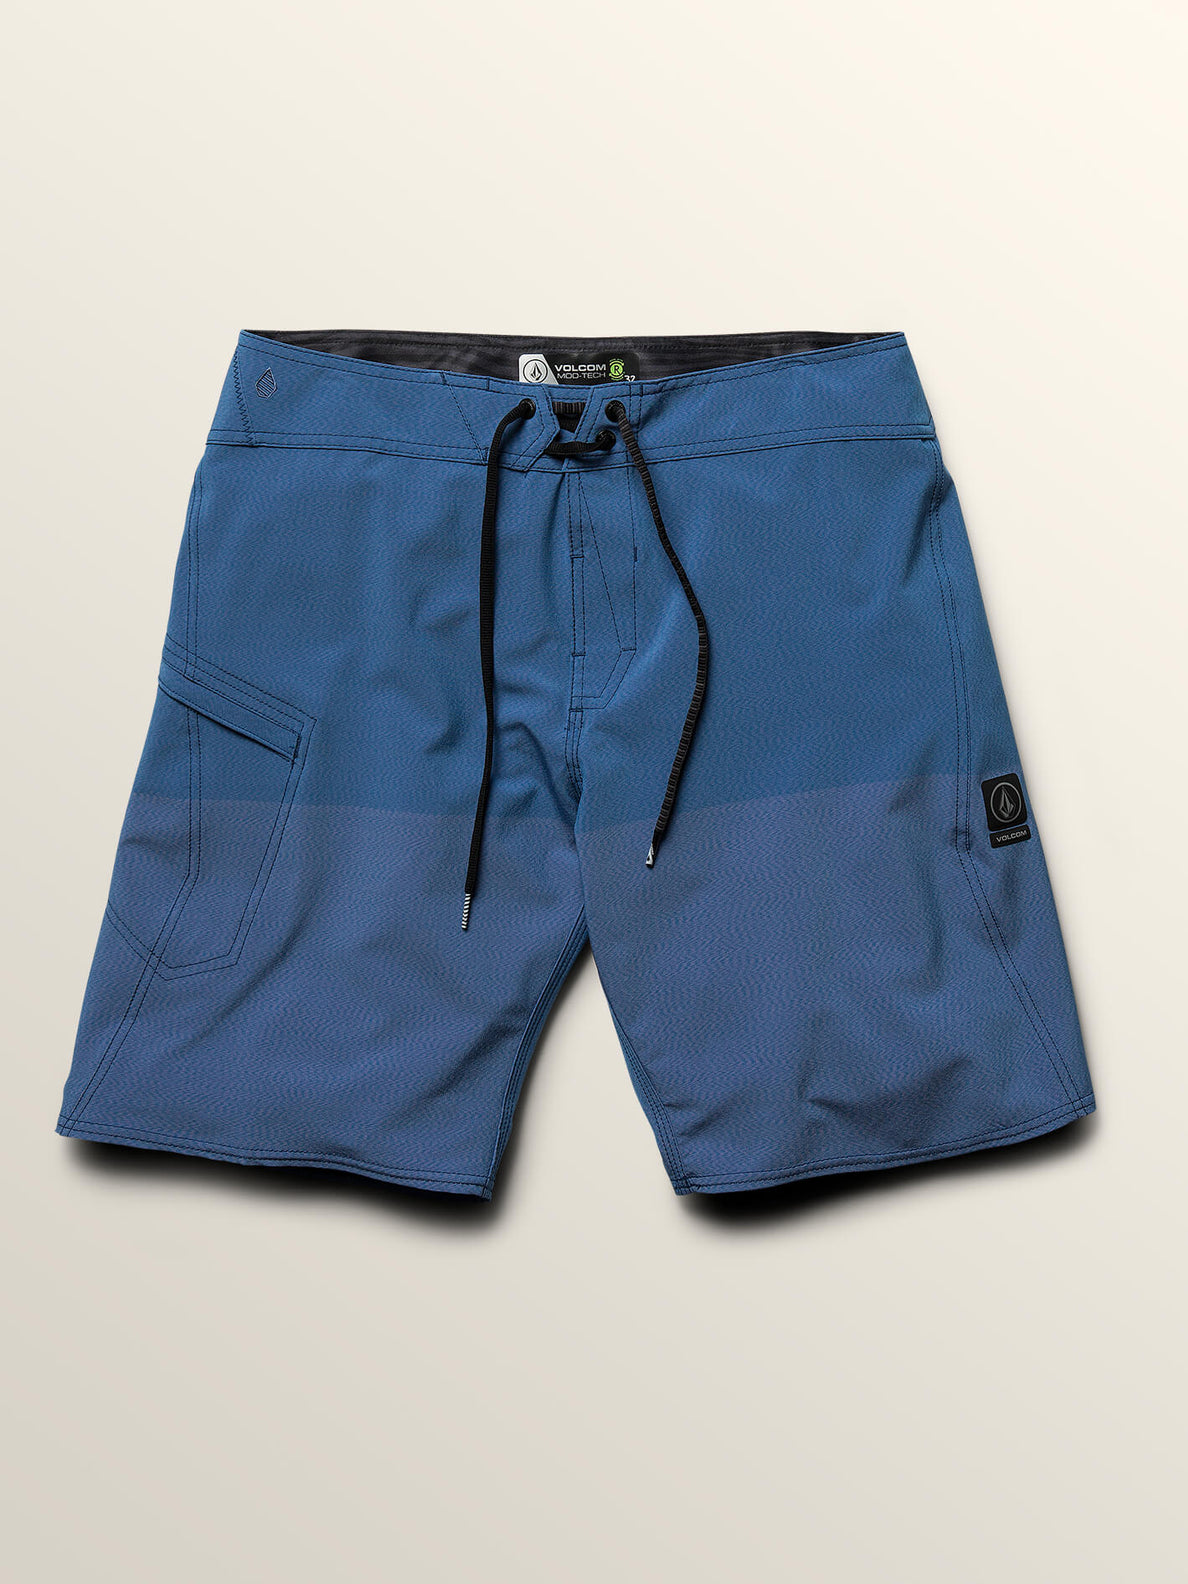 Lido Heather Mod Boardshorts In Jasper Blue, Third Alternate View